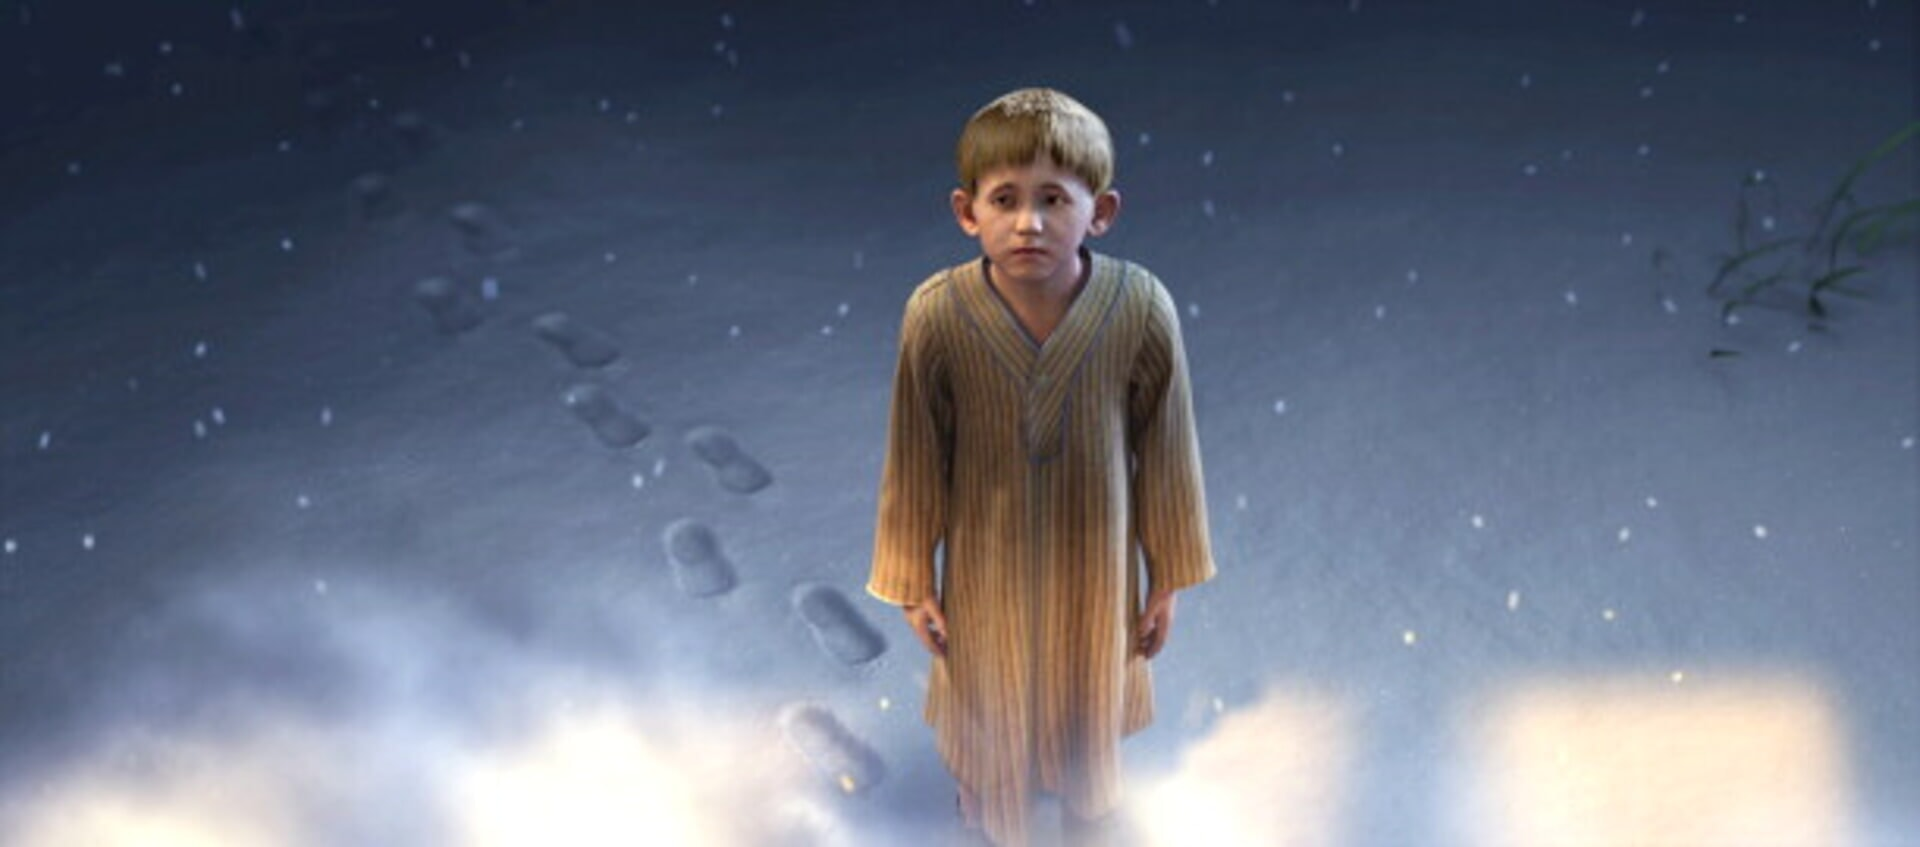 The Polar Express - Image 22